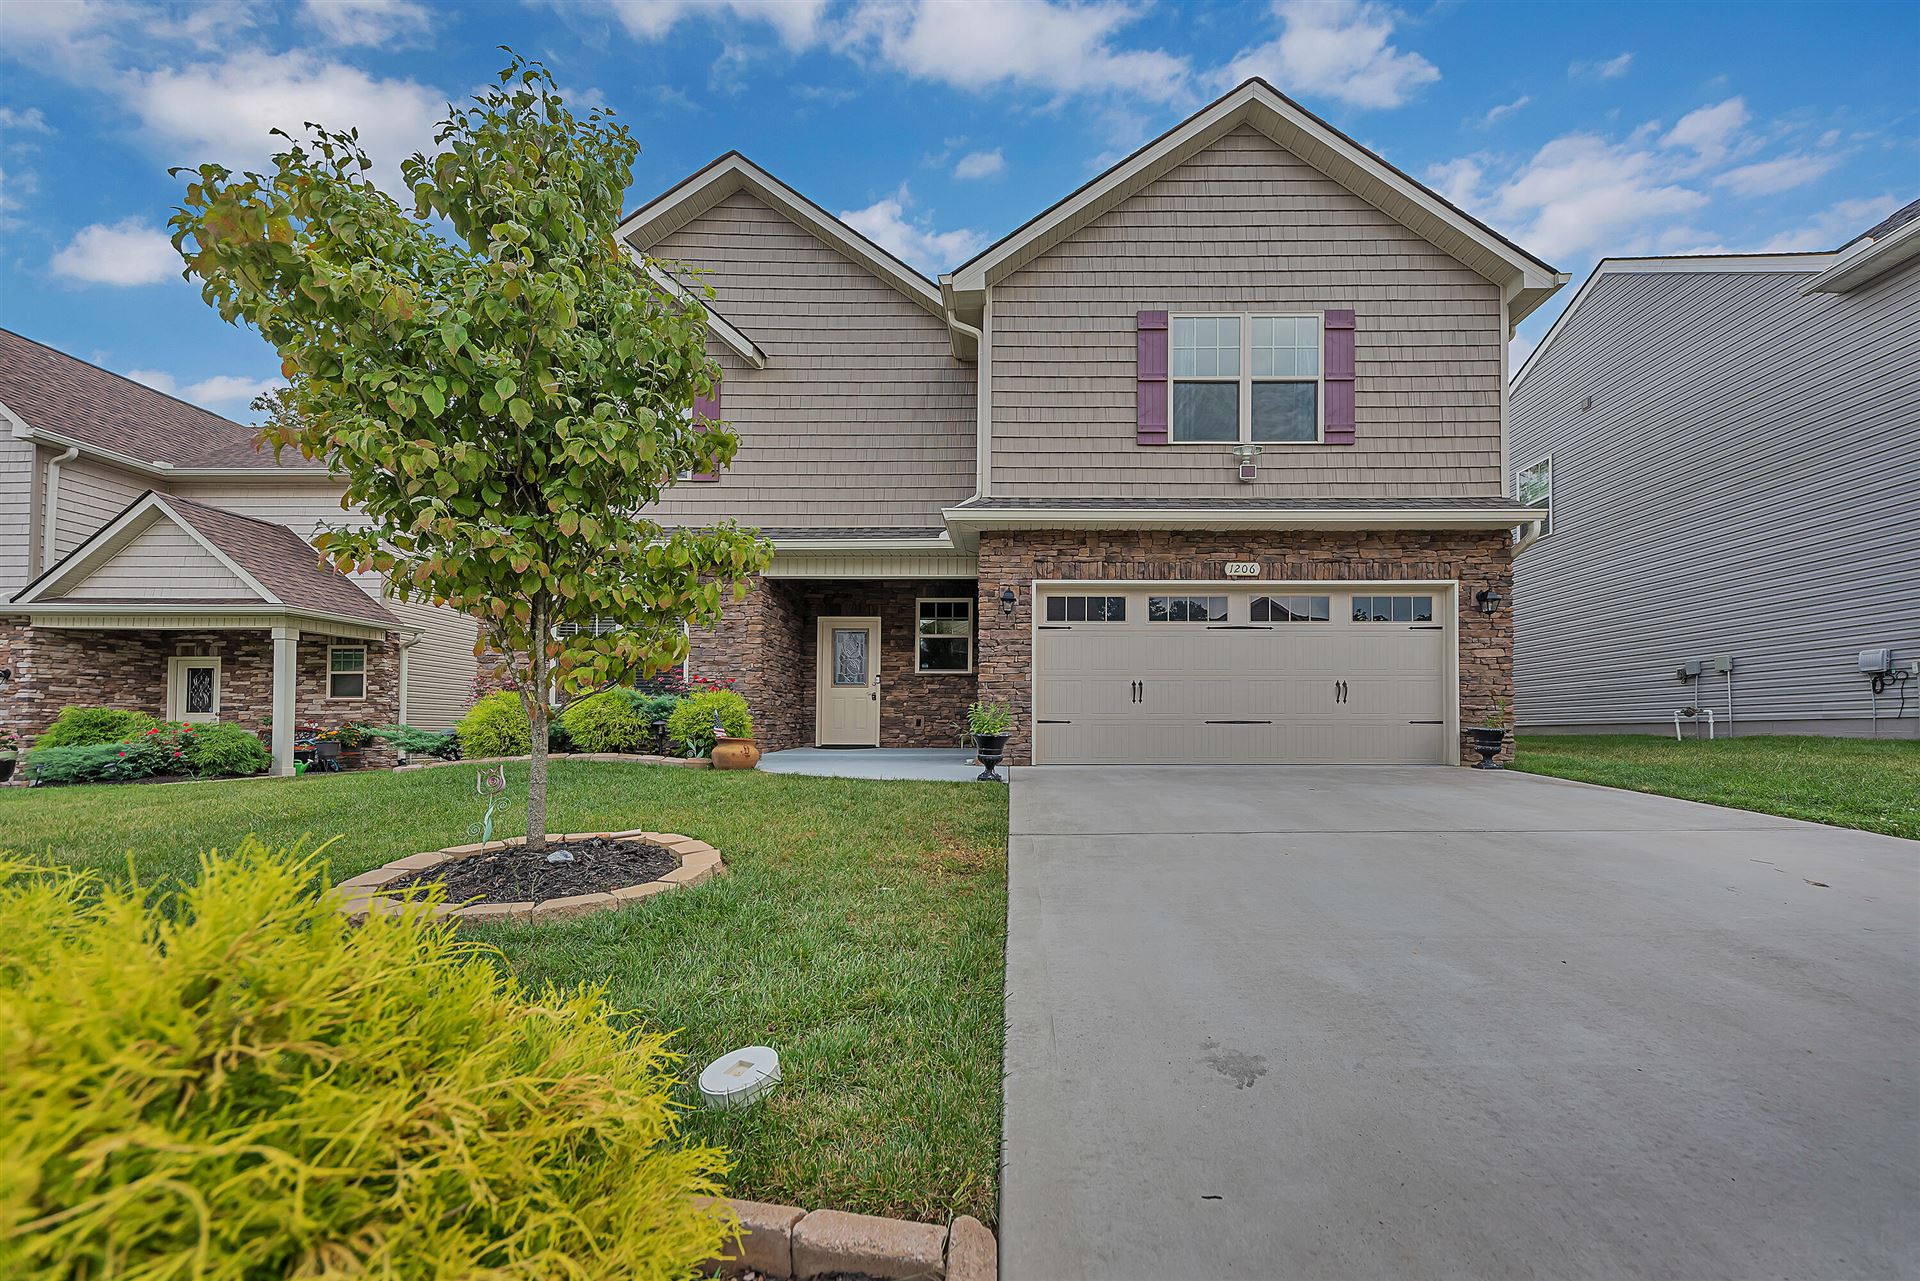 Photo of 1206 Campbell Park Lane, Knoxville, TN 37932 (MLS # 1162537)